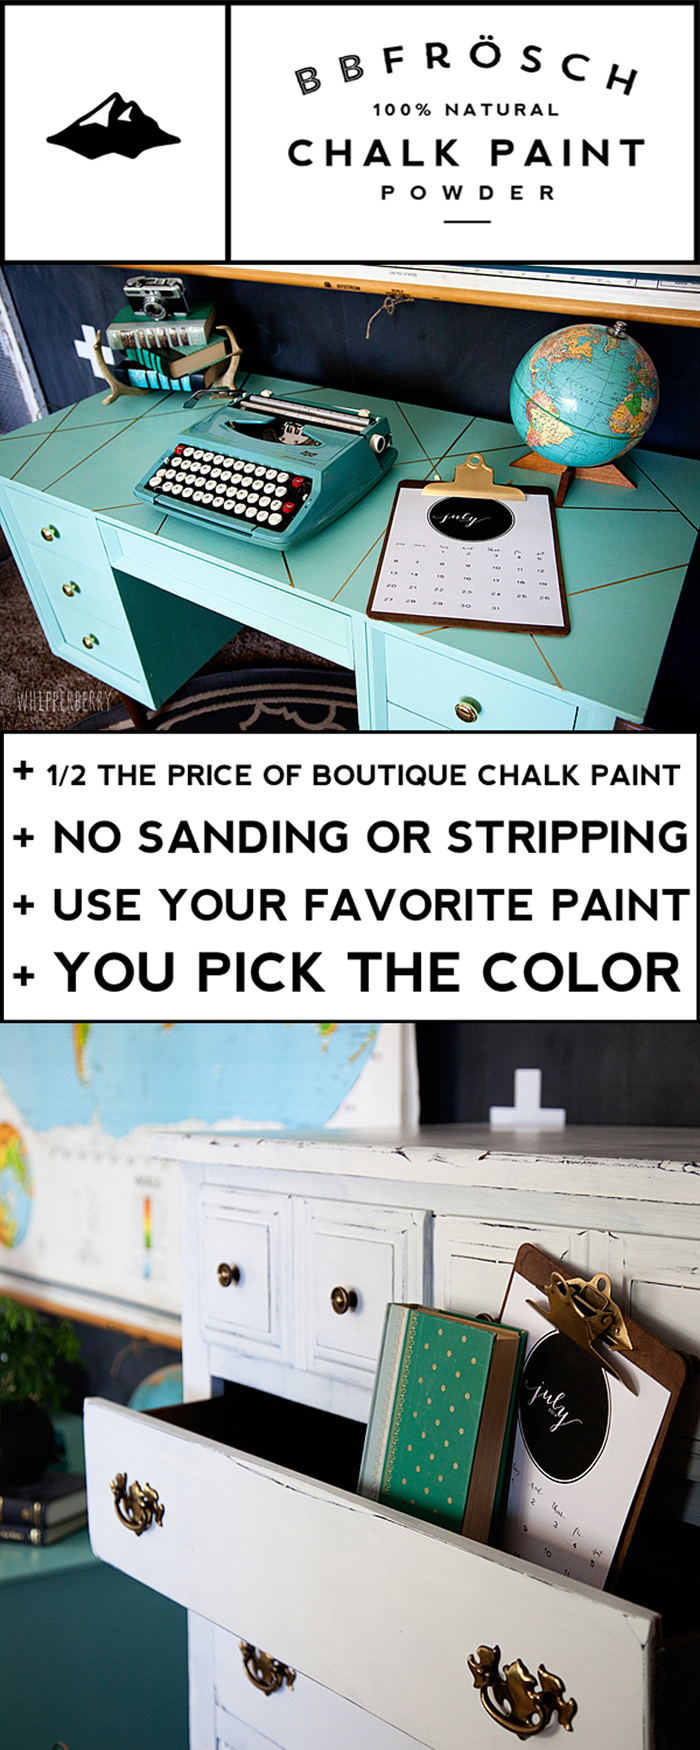 BB-Frosch-Chalk-Paint-Powder